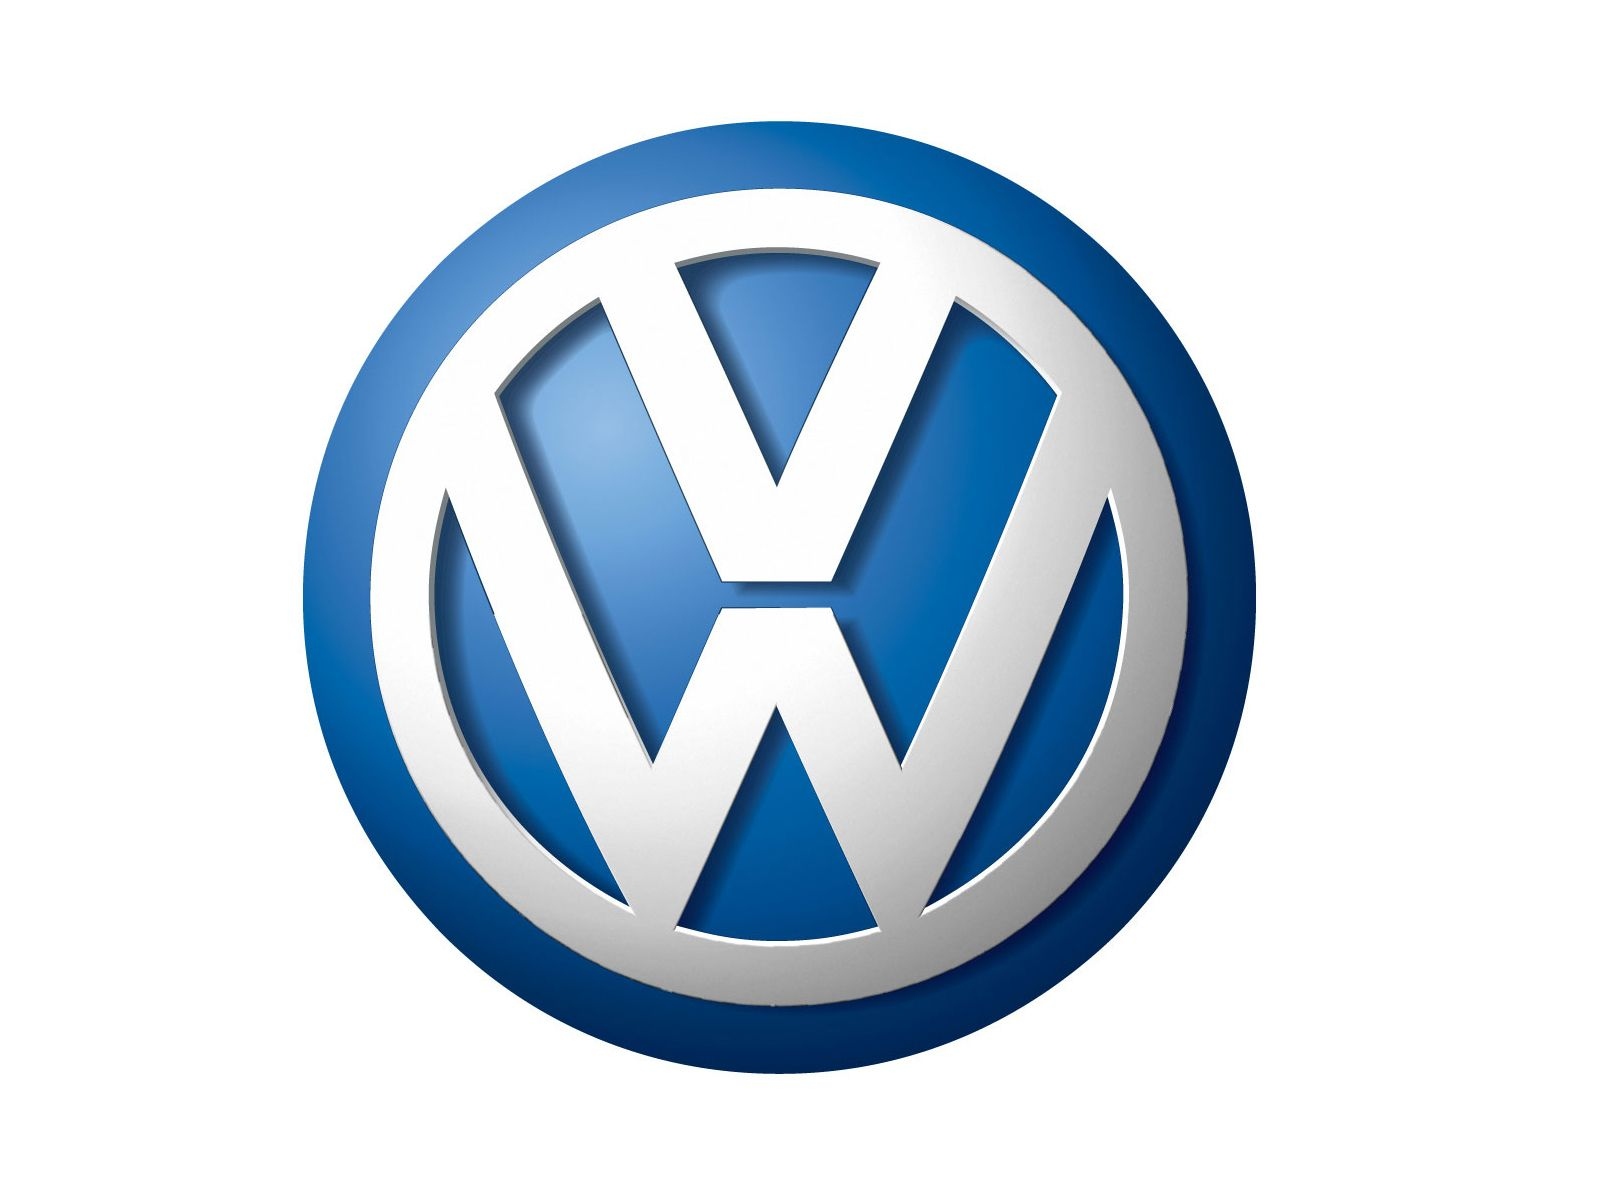 Blue and Silver Car Logo - Volkswagen Logo, Volkswagen Car Symbol Meaning and History | Car ...